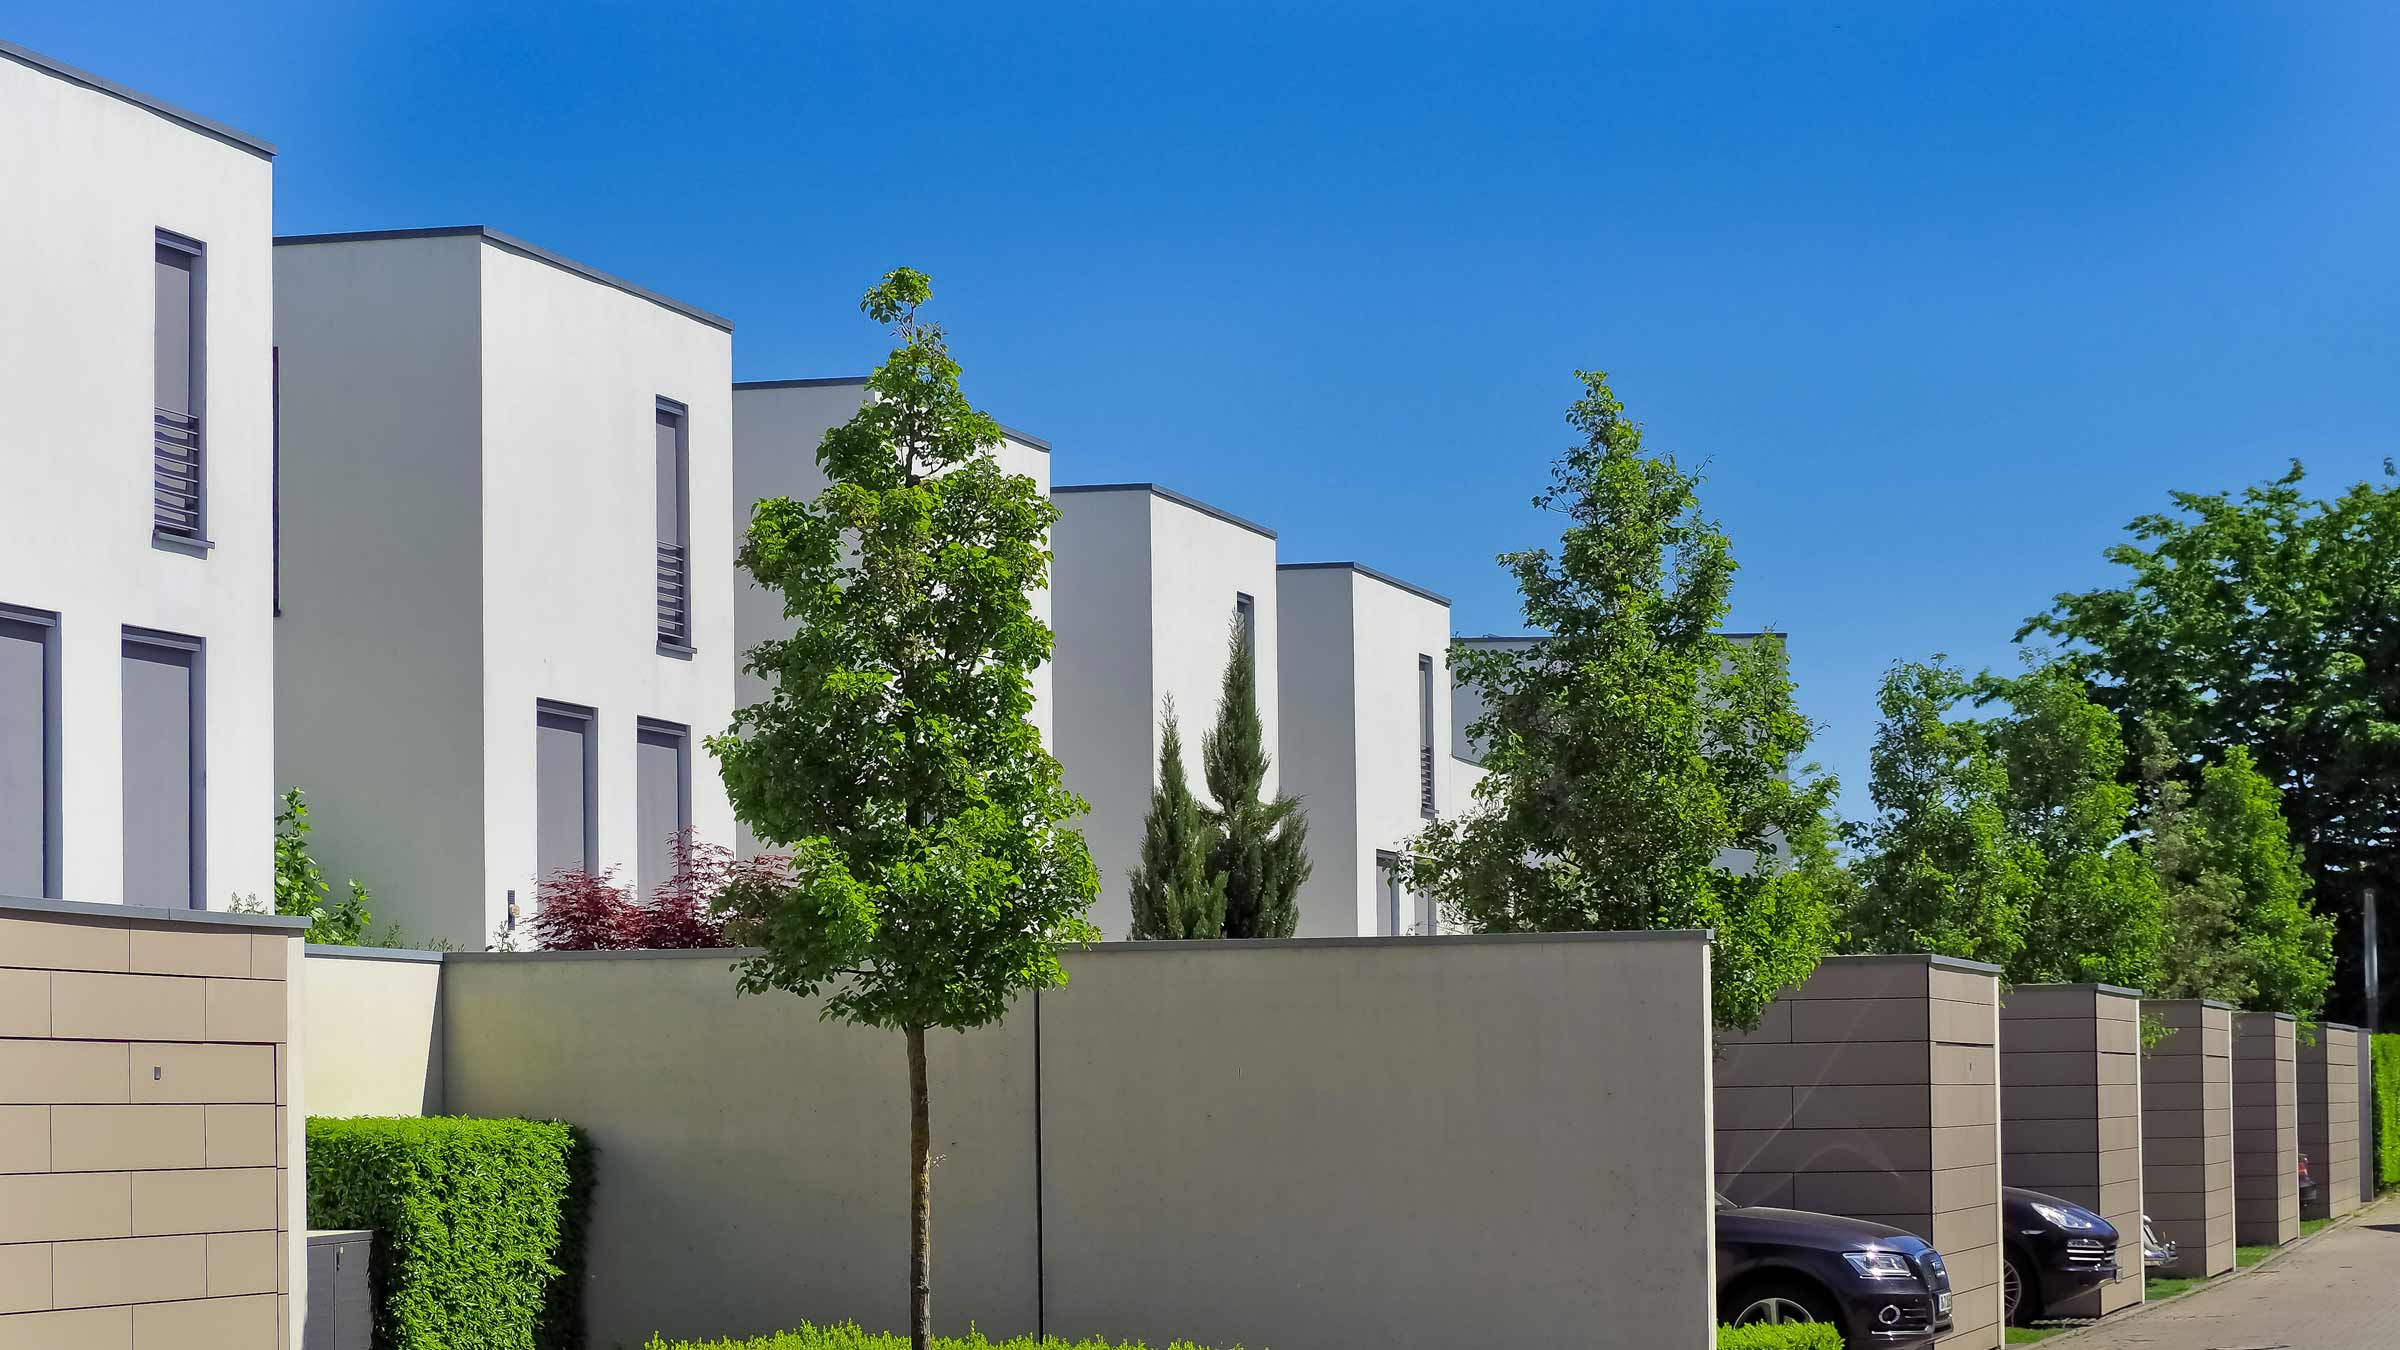 Tree services in Design and Construction